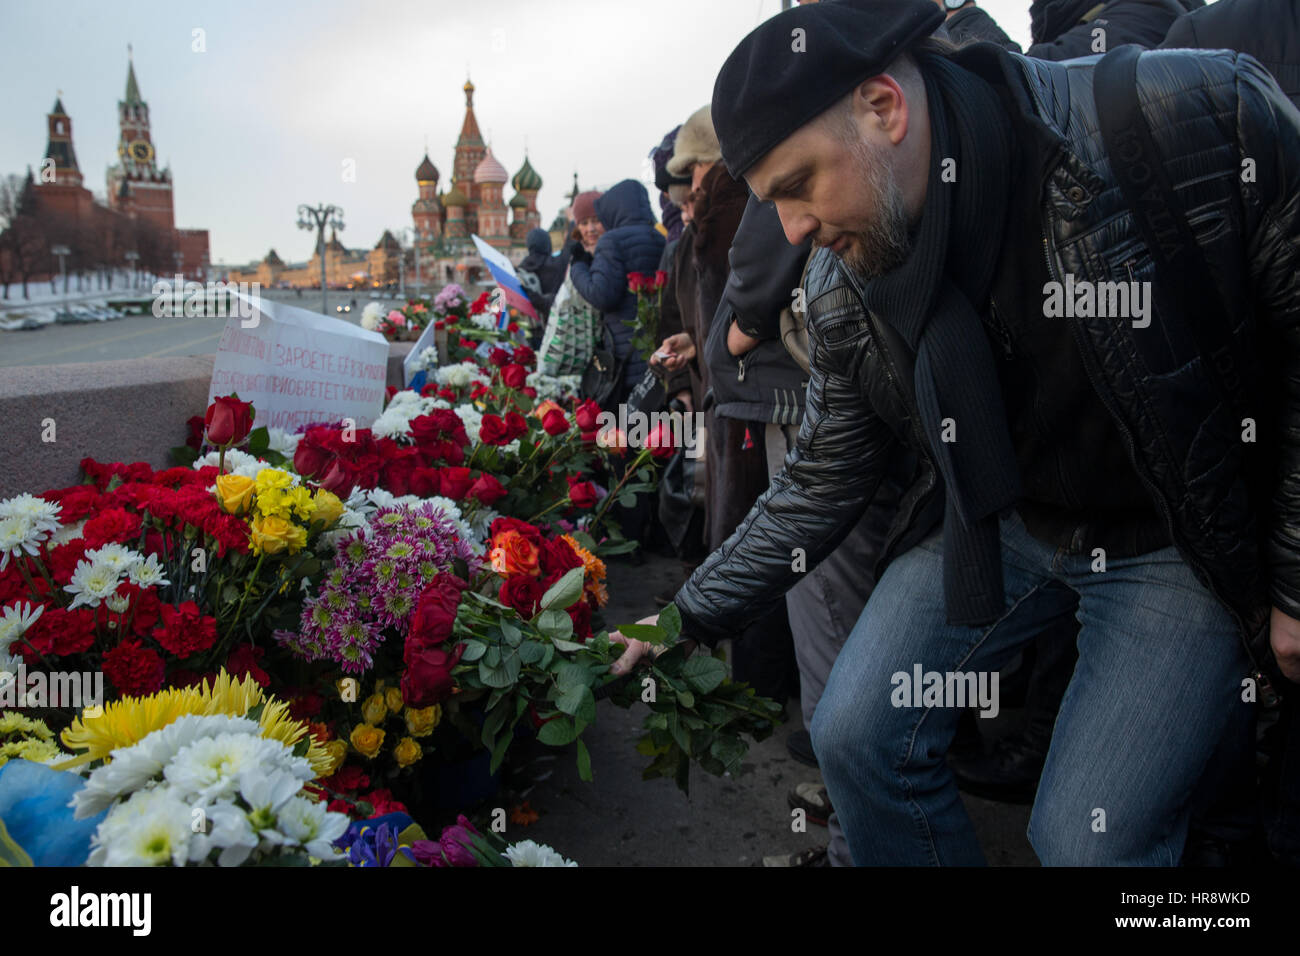 Moscow, Russia. 26th February 2017. Participants in a march in memory of Russian politician Boris Nemtsov on the - Stock Image